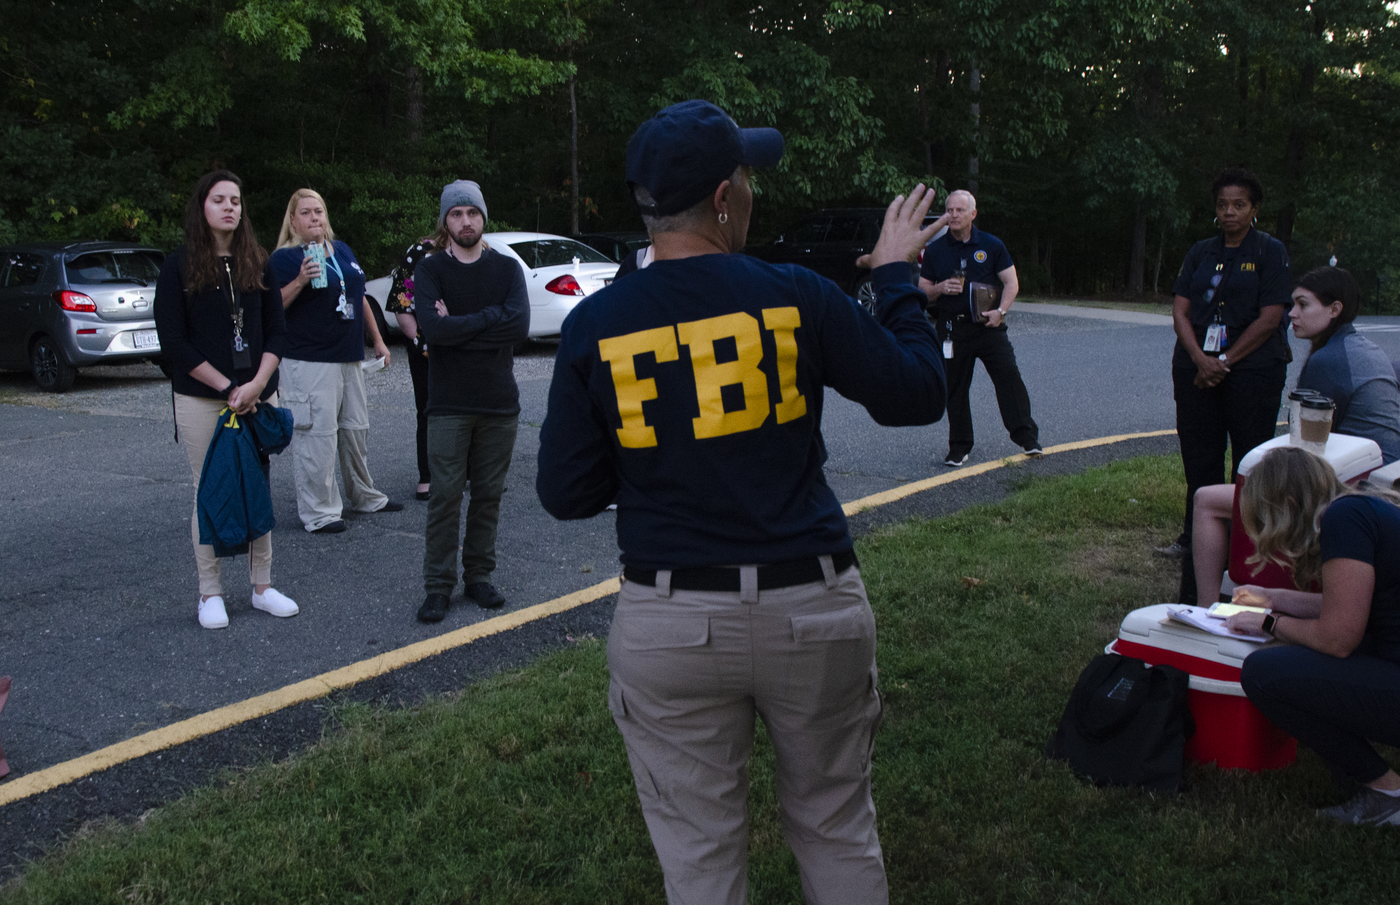 Rebecca Elam, a Victim Services Division program manager, conducts an early-morning briefing for role-players and colleagues ahead of a September 25, 2019, mass-casualty exercise at the FBI Training Academy in Quantico, Virginia. The exercise culminated ELEVATE-APB training for victim service providers.